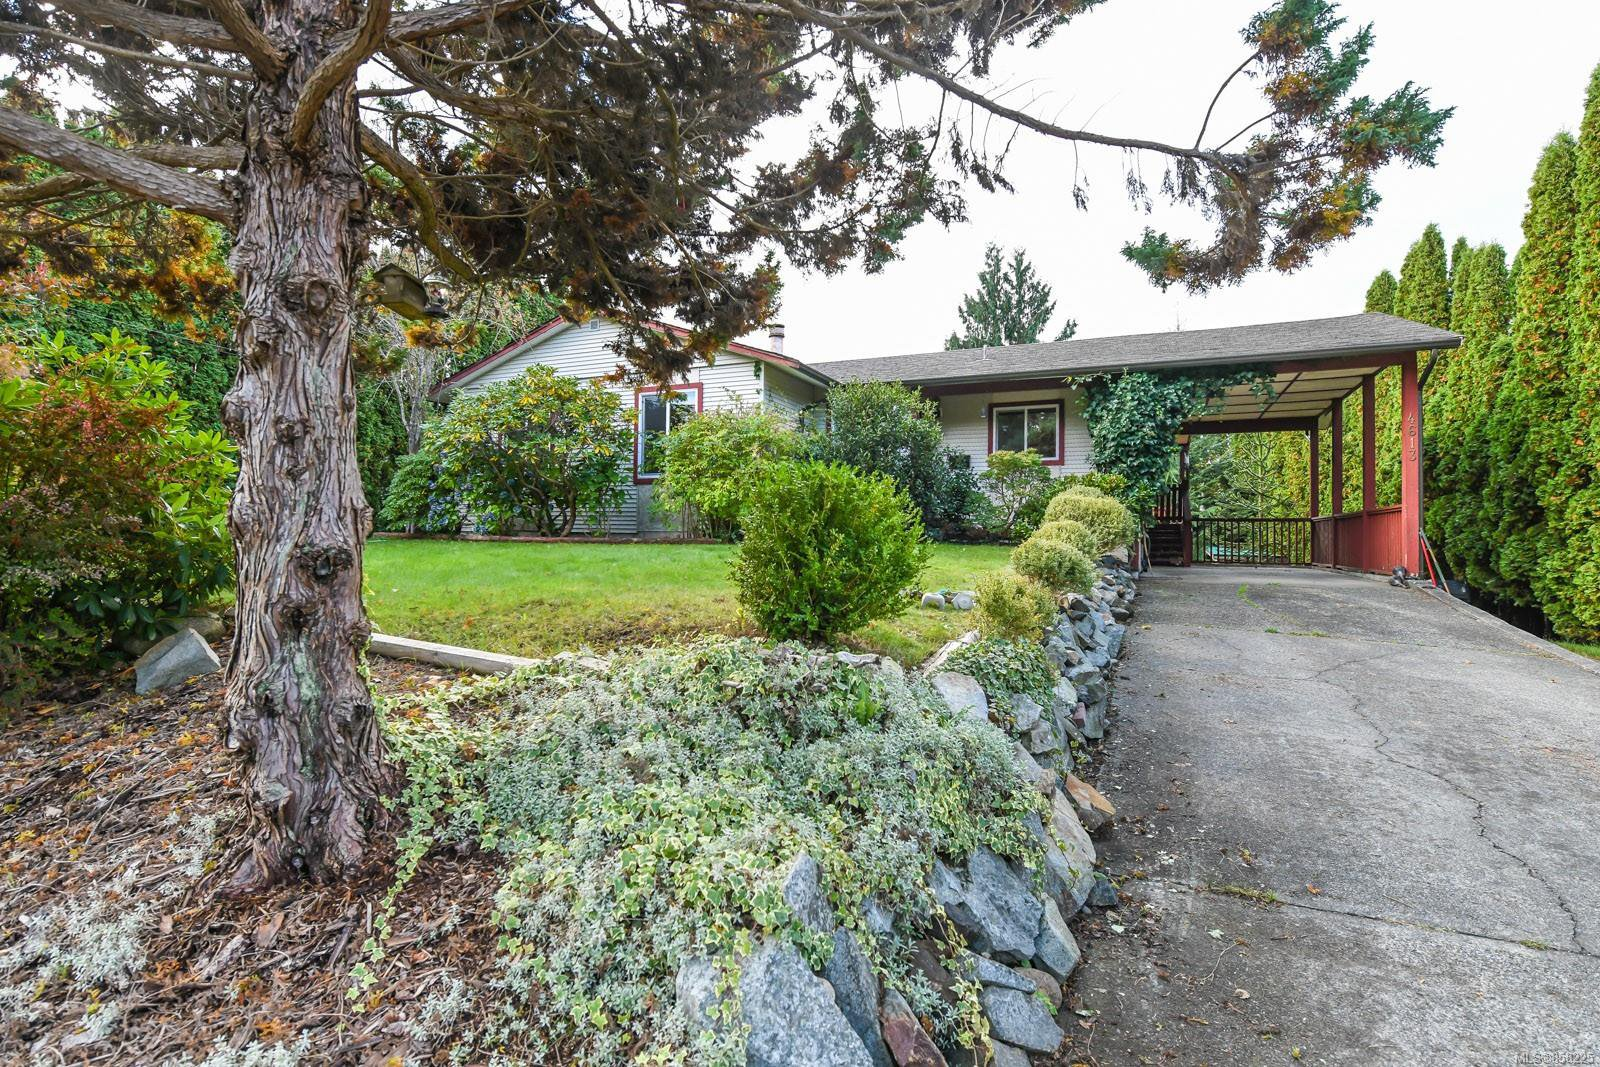 Main Photo: 4613 Gail Cres in : CV Courtenay North House for sale (Comox Valley)  : MLS®# 858225